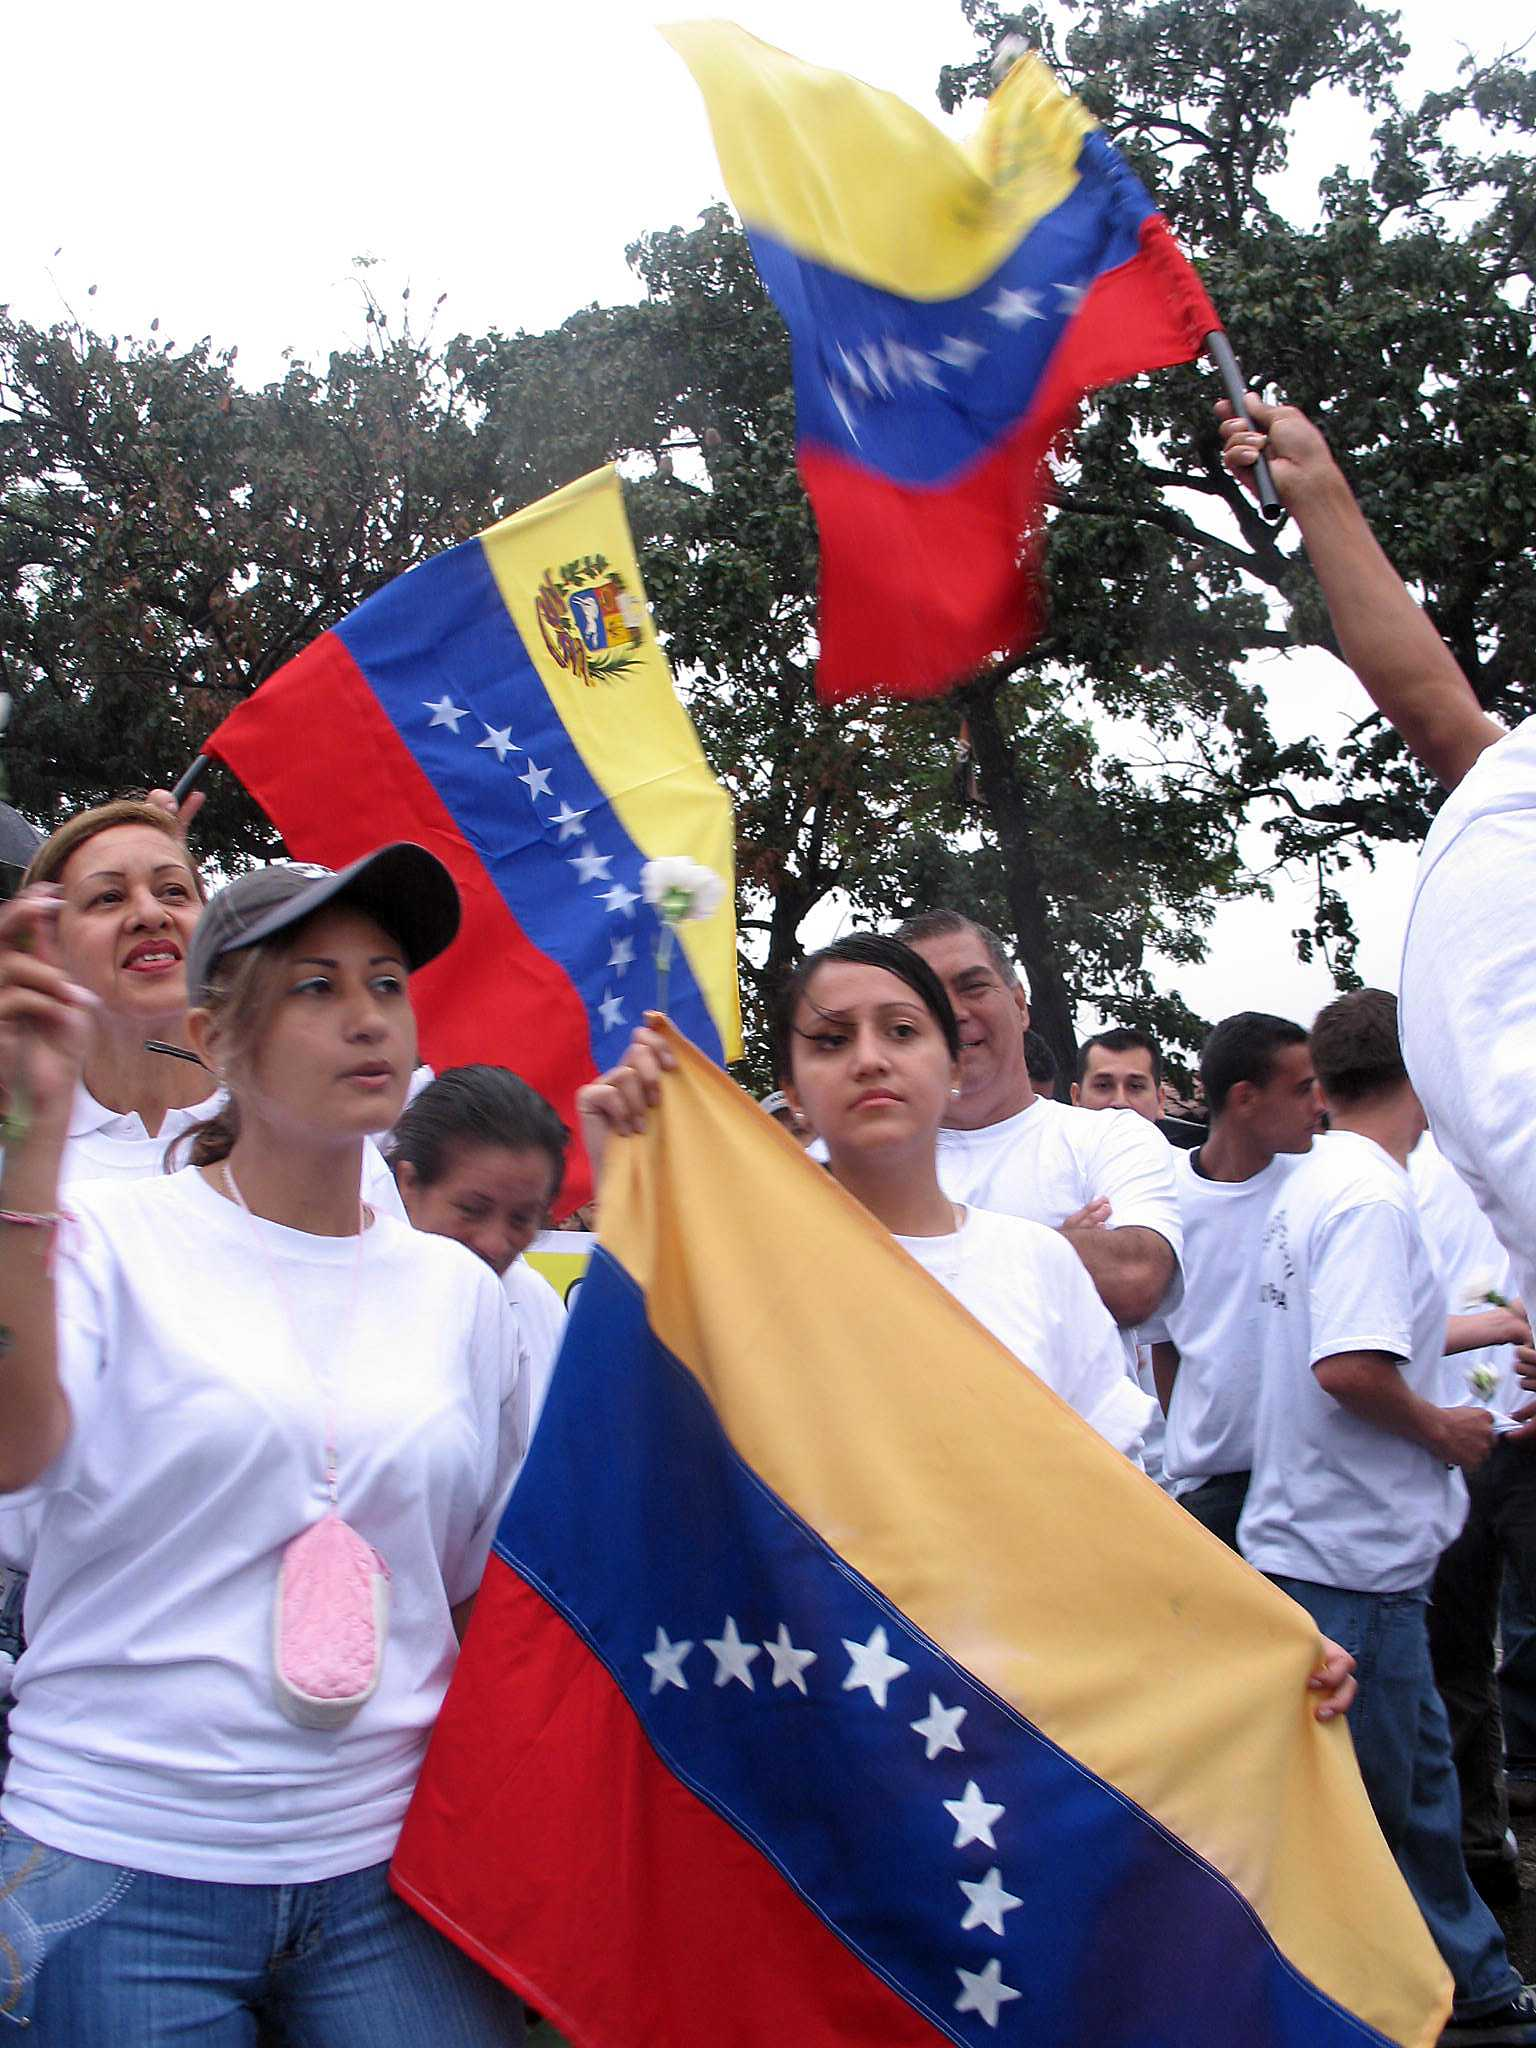 Residents+of+the+Venezuela-Colombia+border+town+San+Antonio%2C+Venezuela%2C+rally+March+6%2C+2008%2C+for+peace+between+the+two+countries.+The+banner+reads+%22We+are+United+Brother+Countries.%22+Tensions+between+the+two+countries+exploded+this+week+after+Colombian+troops+killed+17+Colombian+guerrillas+inside+Ecuador.+Venezuelan+President+Hugo+Chavez+responded+by+threatening+war+if+Colombian+troops+entered+Venezuela.+%28Jack+Chang%2FMCT%29